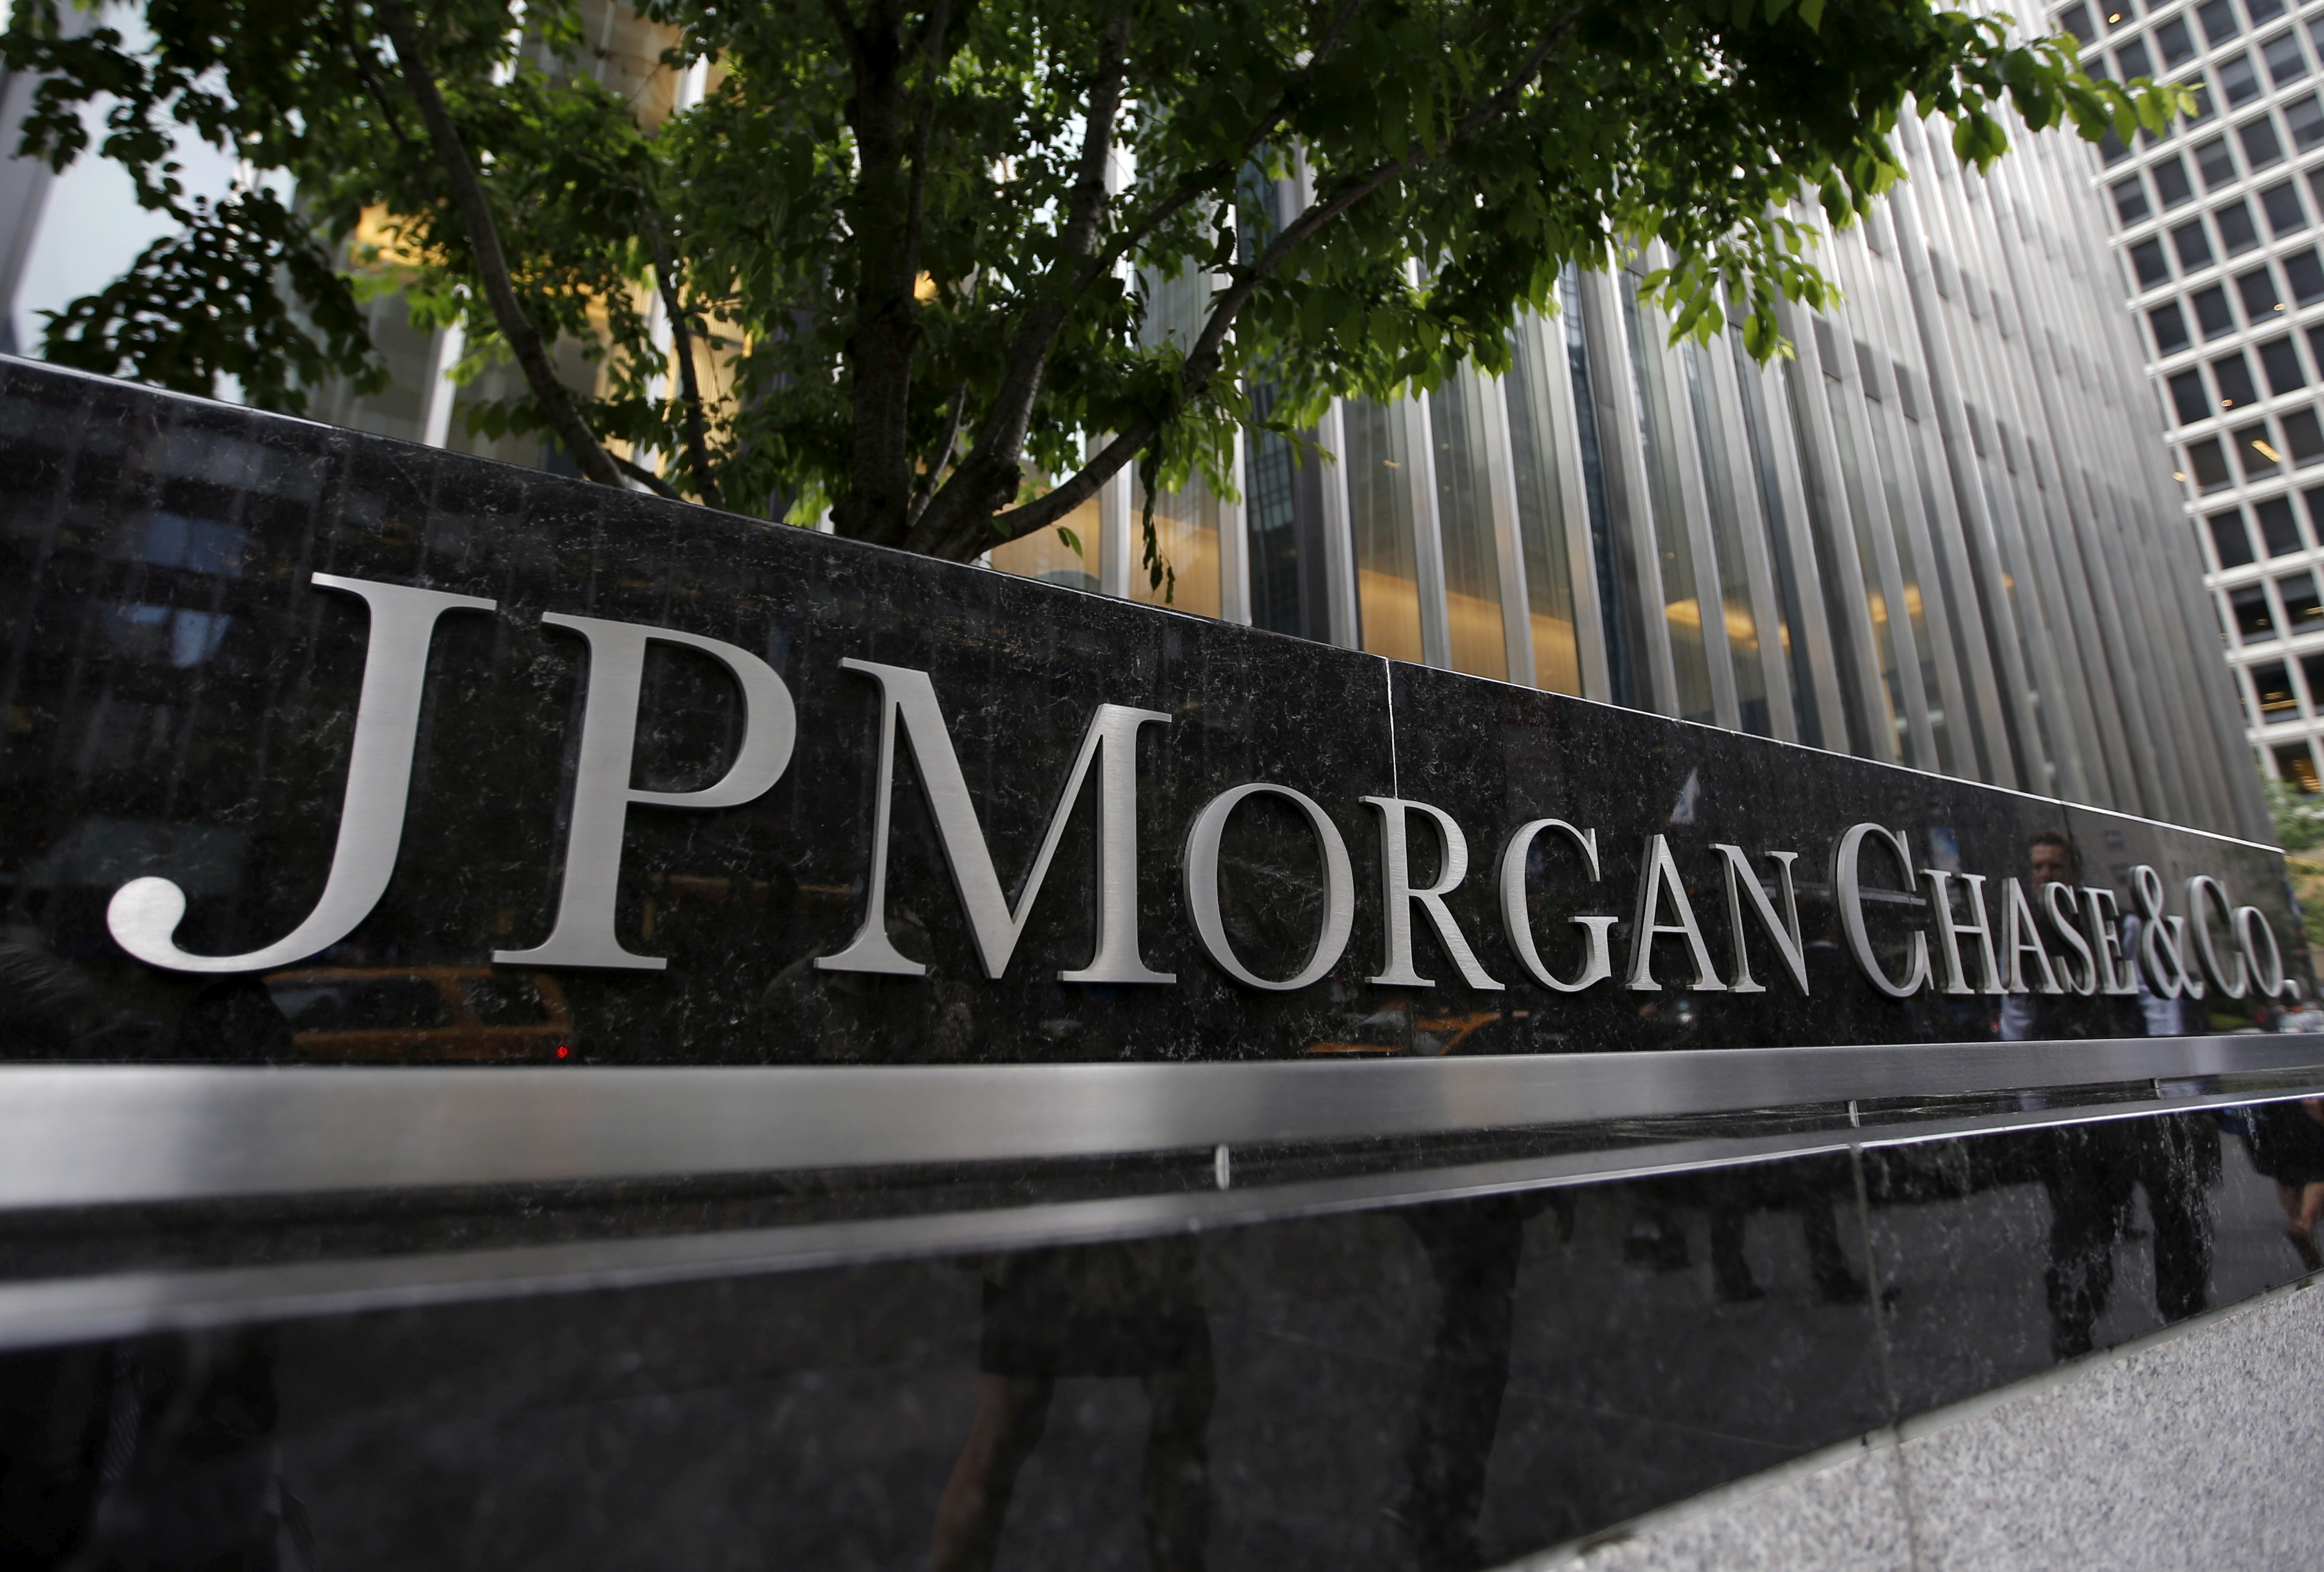 A view of the exterior of the JP Morgan Chase & Co. corporate headquarters in New York City May 20, 2015.  REUTERS/Mike Segar/File Photo